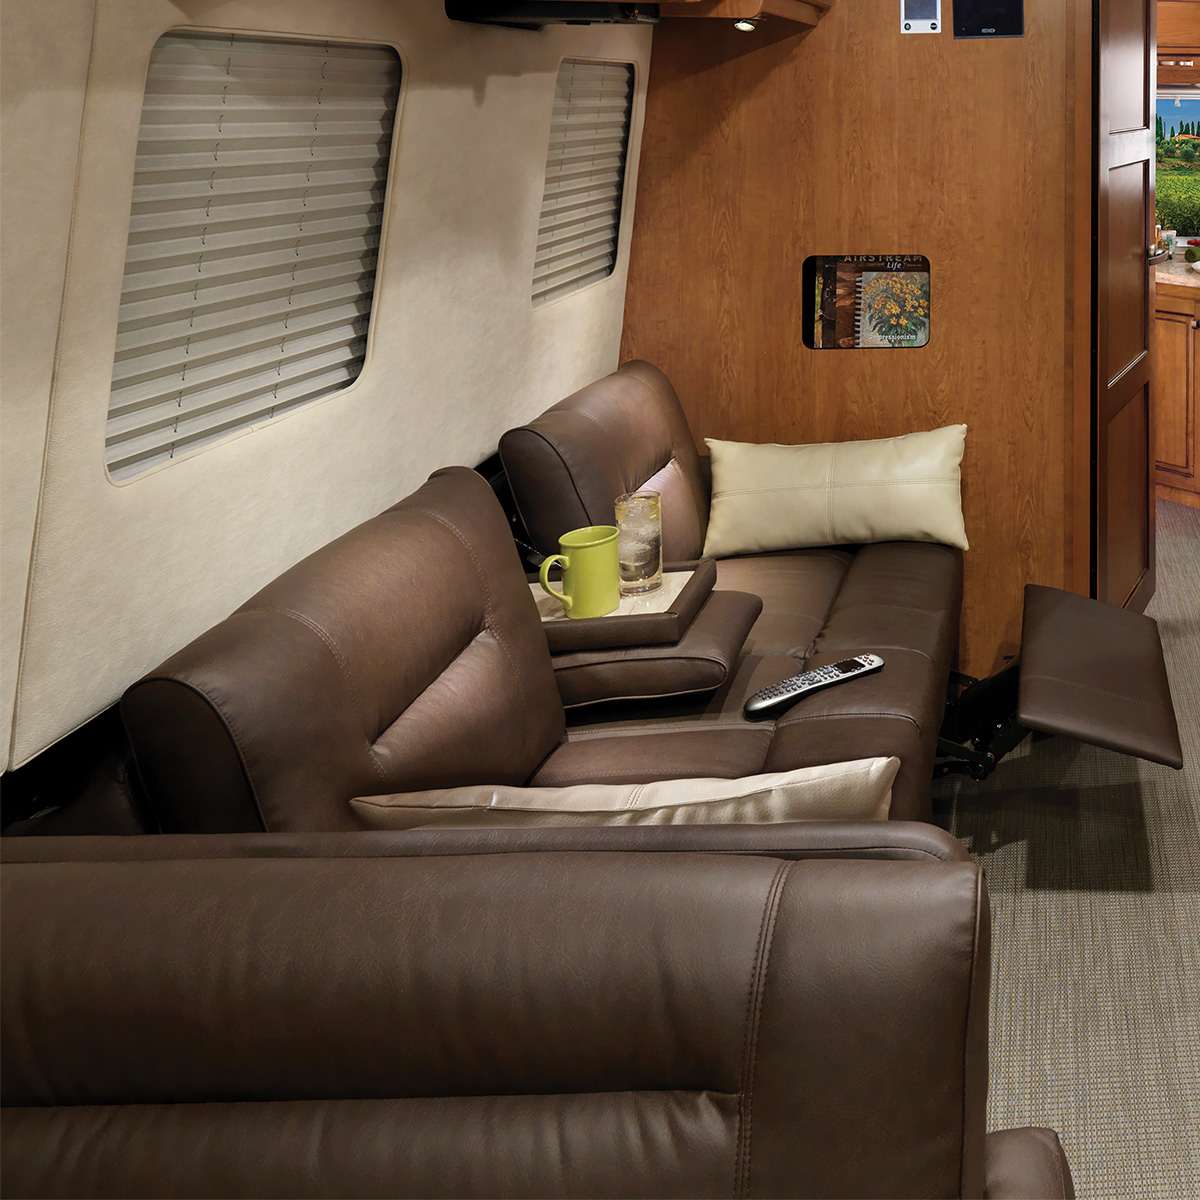 Surprising Classic 33Fb Floor Plan Travel Trailers Airstream Andrewgaddart Wooden Chair Designs For Living Room Andrewgaddartcom